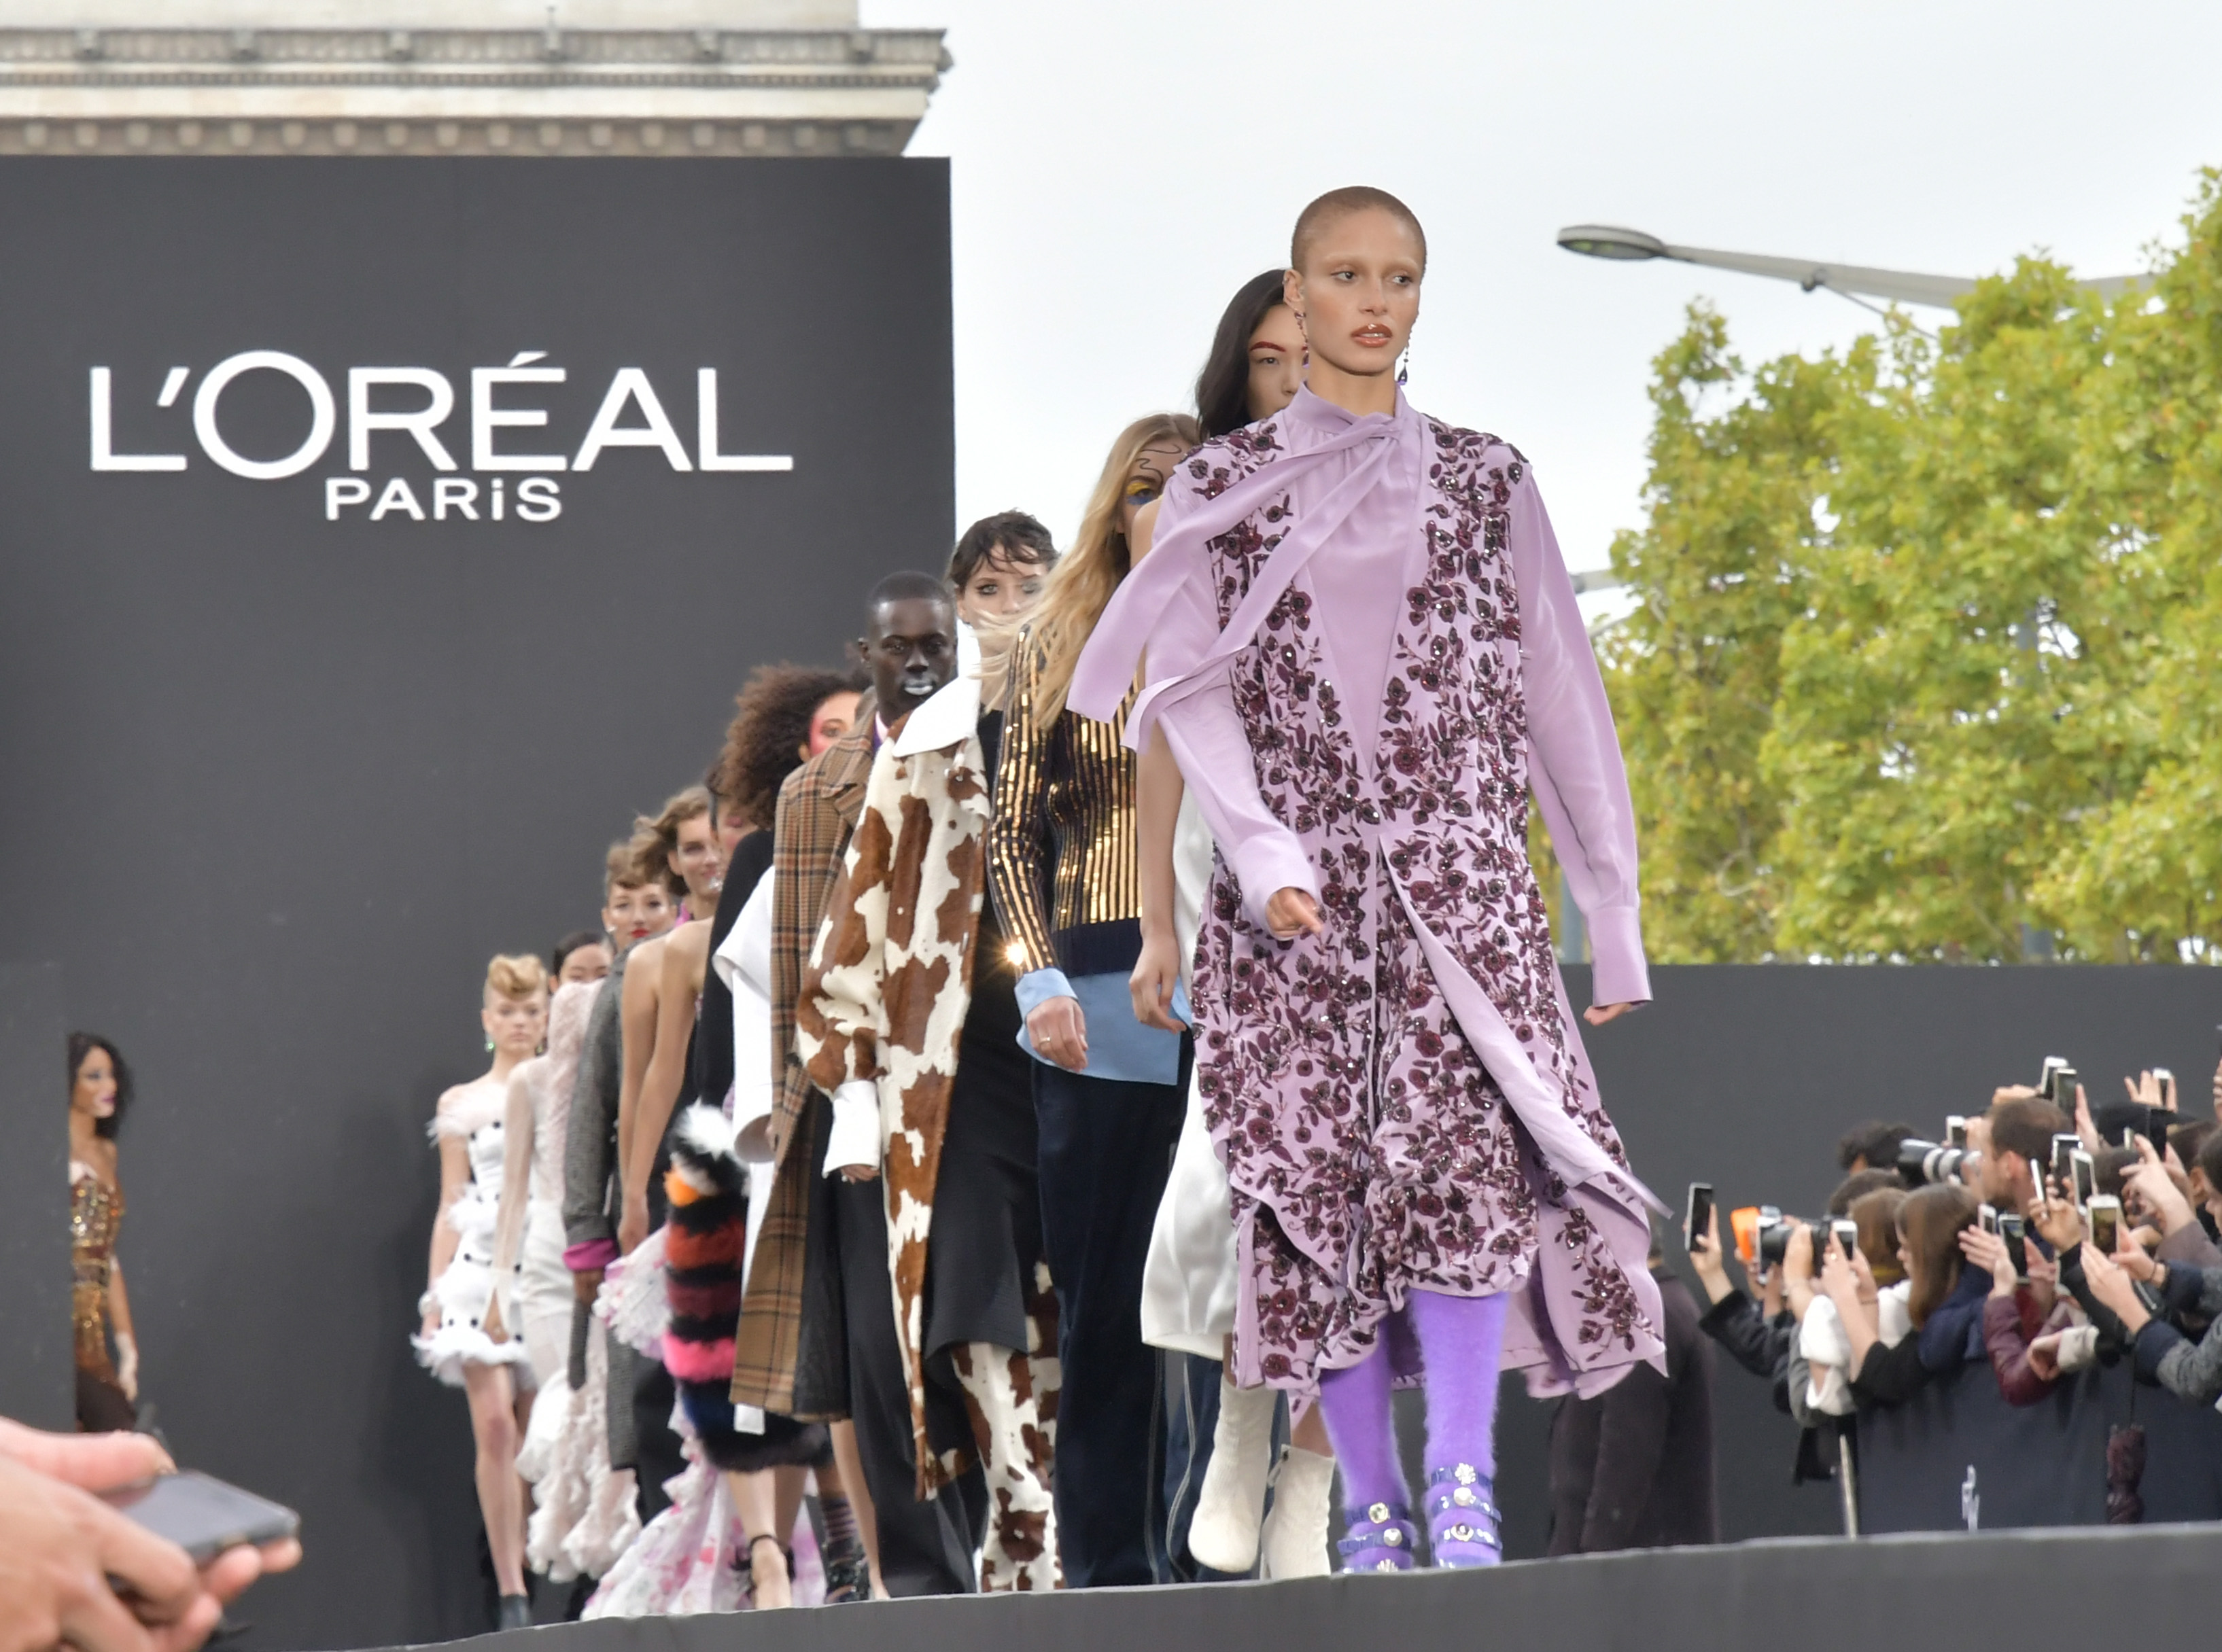 Adwoa Aboah and models on the catwalkL'Oreal show, Runway, Spring Summer 2018, Paris Fashion Week, France - 01 Oct 2017